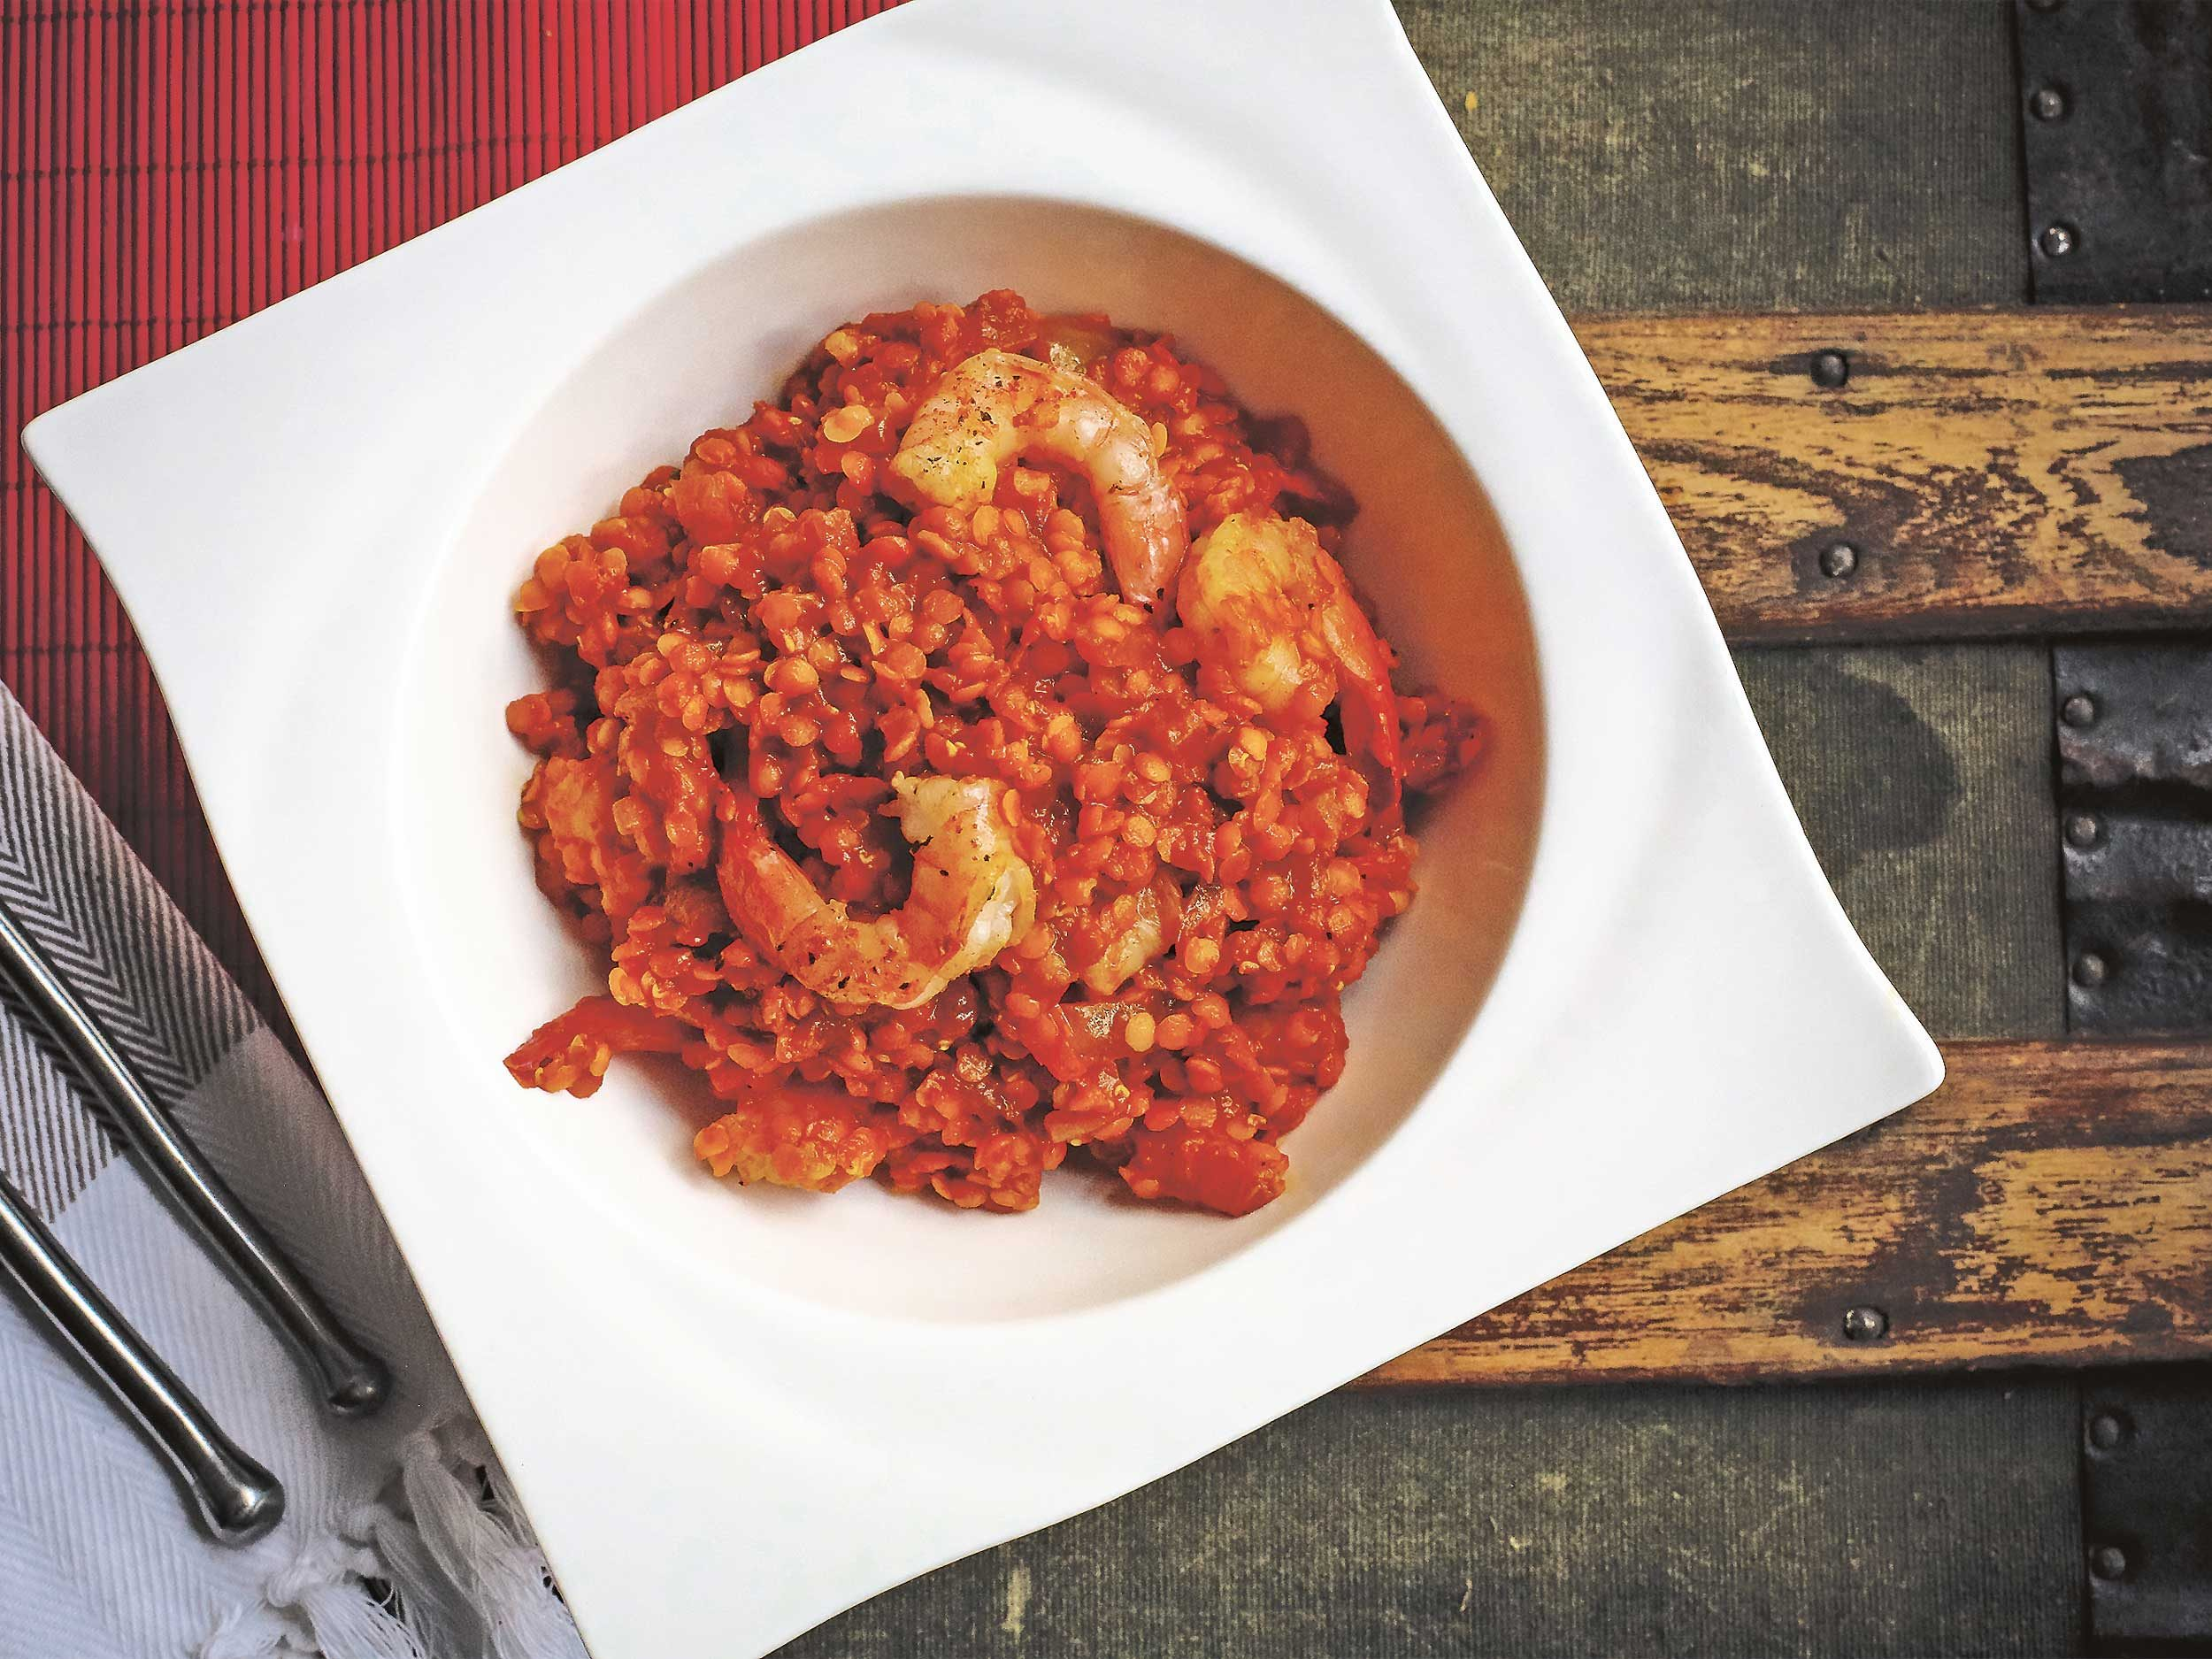 Curried Red Lentils With Shrimp or Tofu